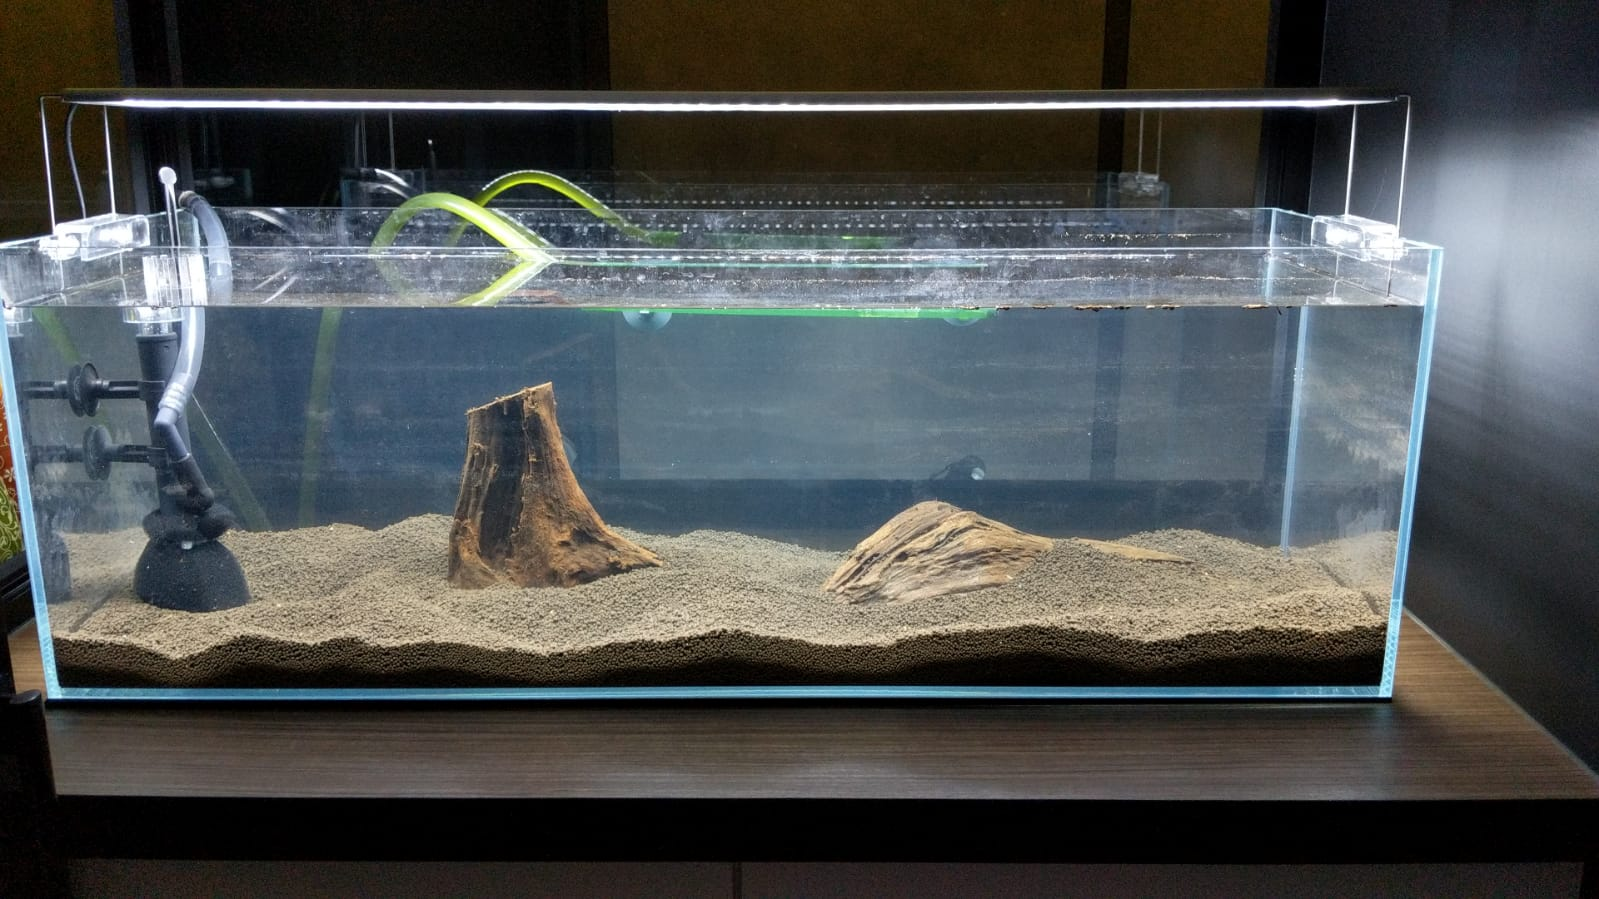 I have spent more than $1000 on my aquarium so far, here's a picture of it